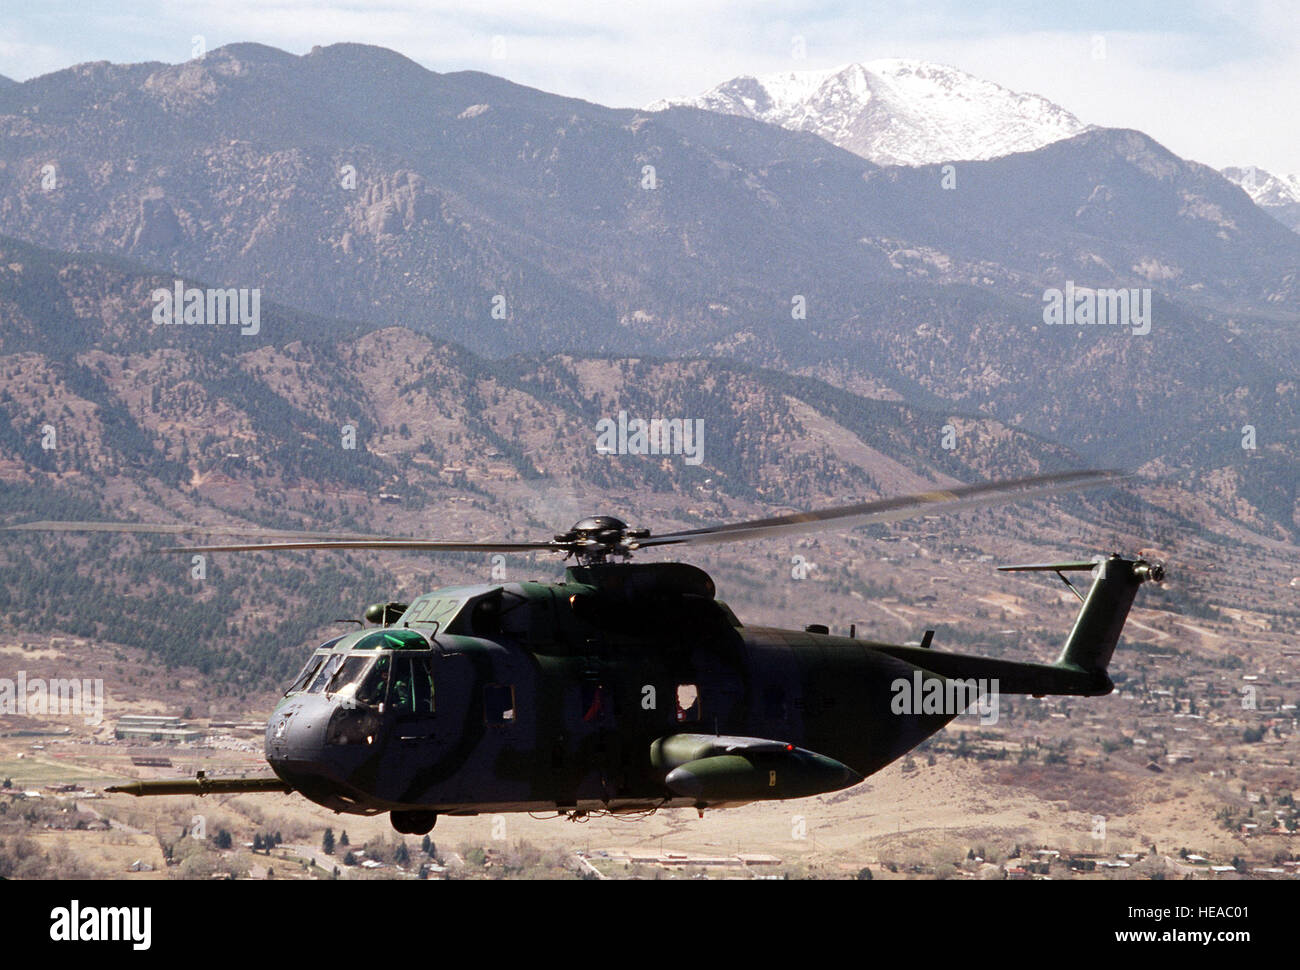 A 71st Air Rescue Squadron (71st ARS) HH-3E Jolly Green Giant helicopter flies near Pike's Peak en route to - Stock Image